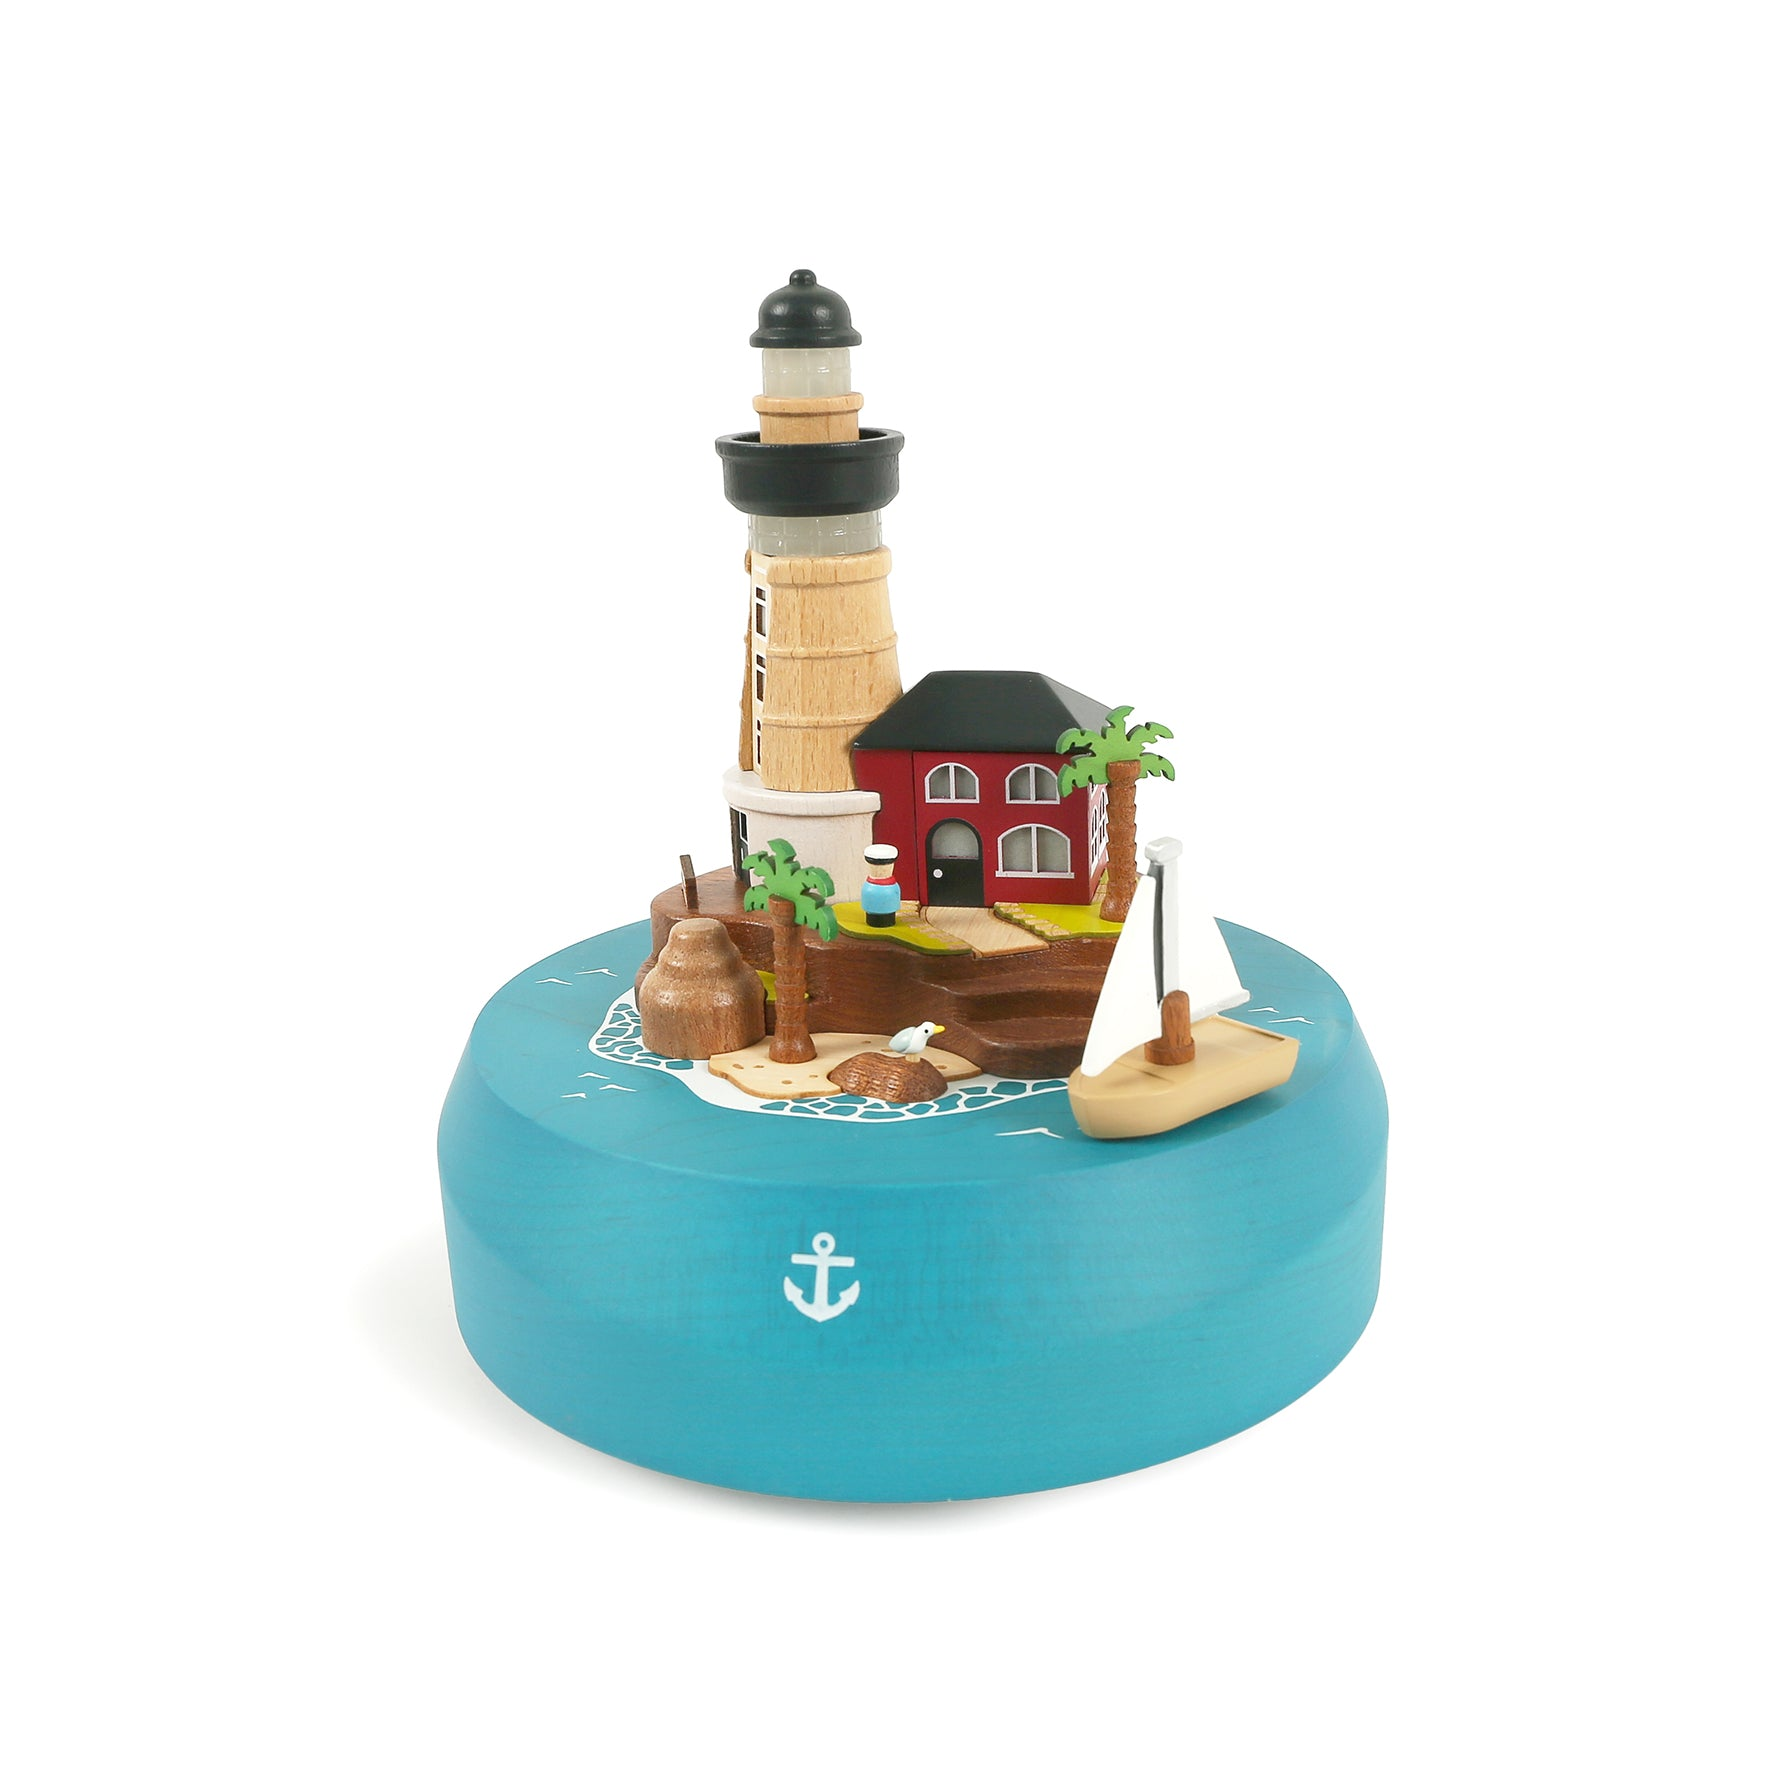 Caja Musical Wooderful life - lámpara Wooden Animated Sailboat and Lighthouse (faro)